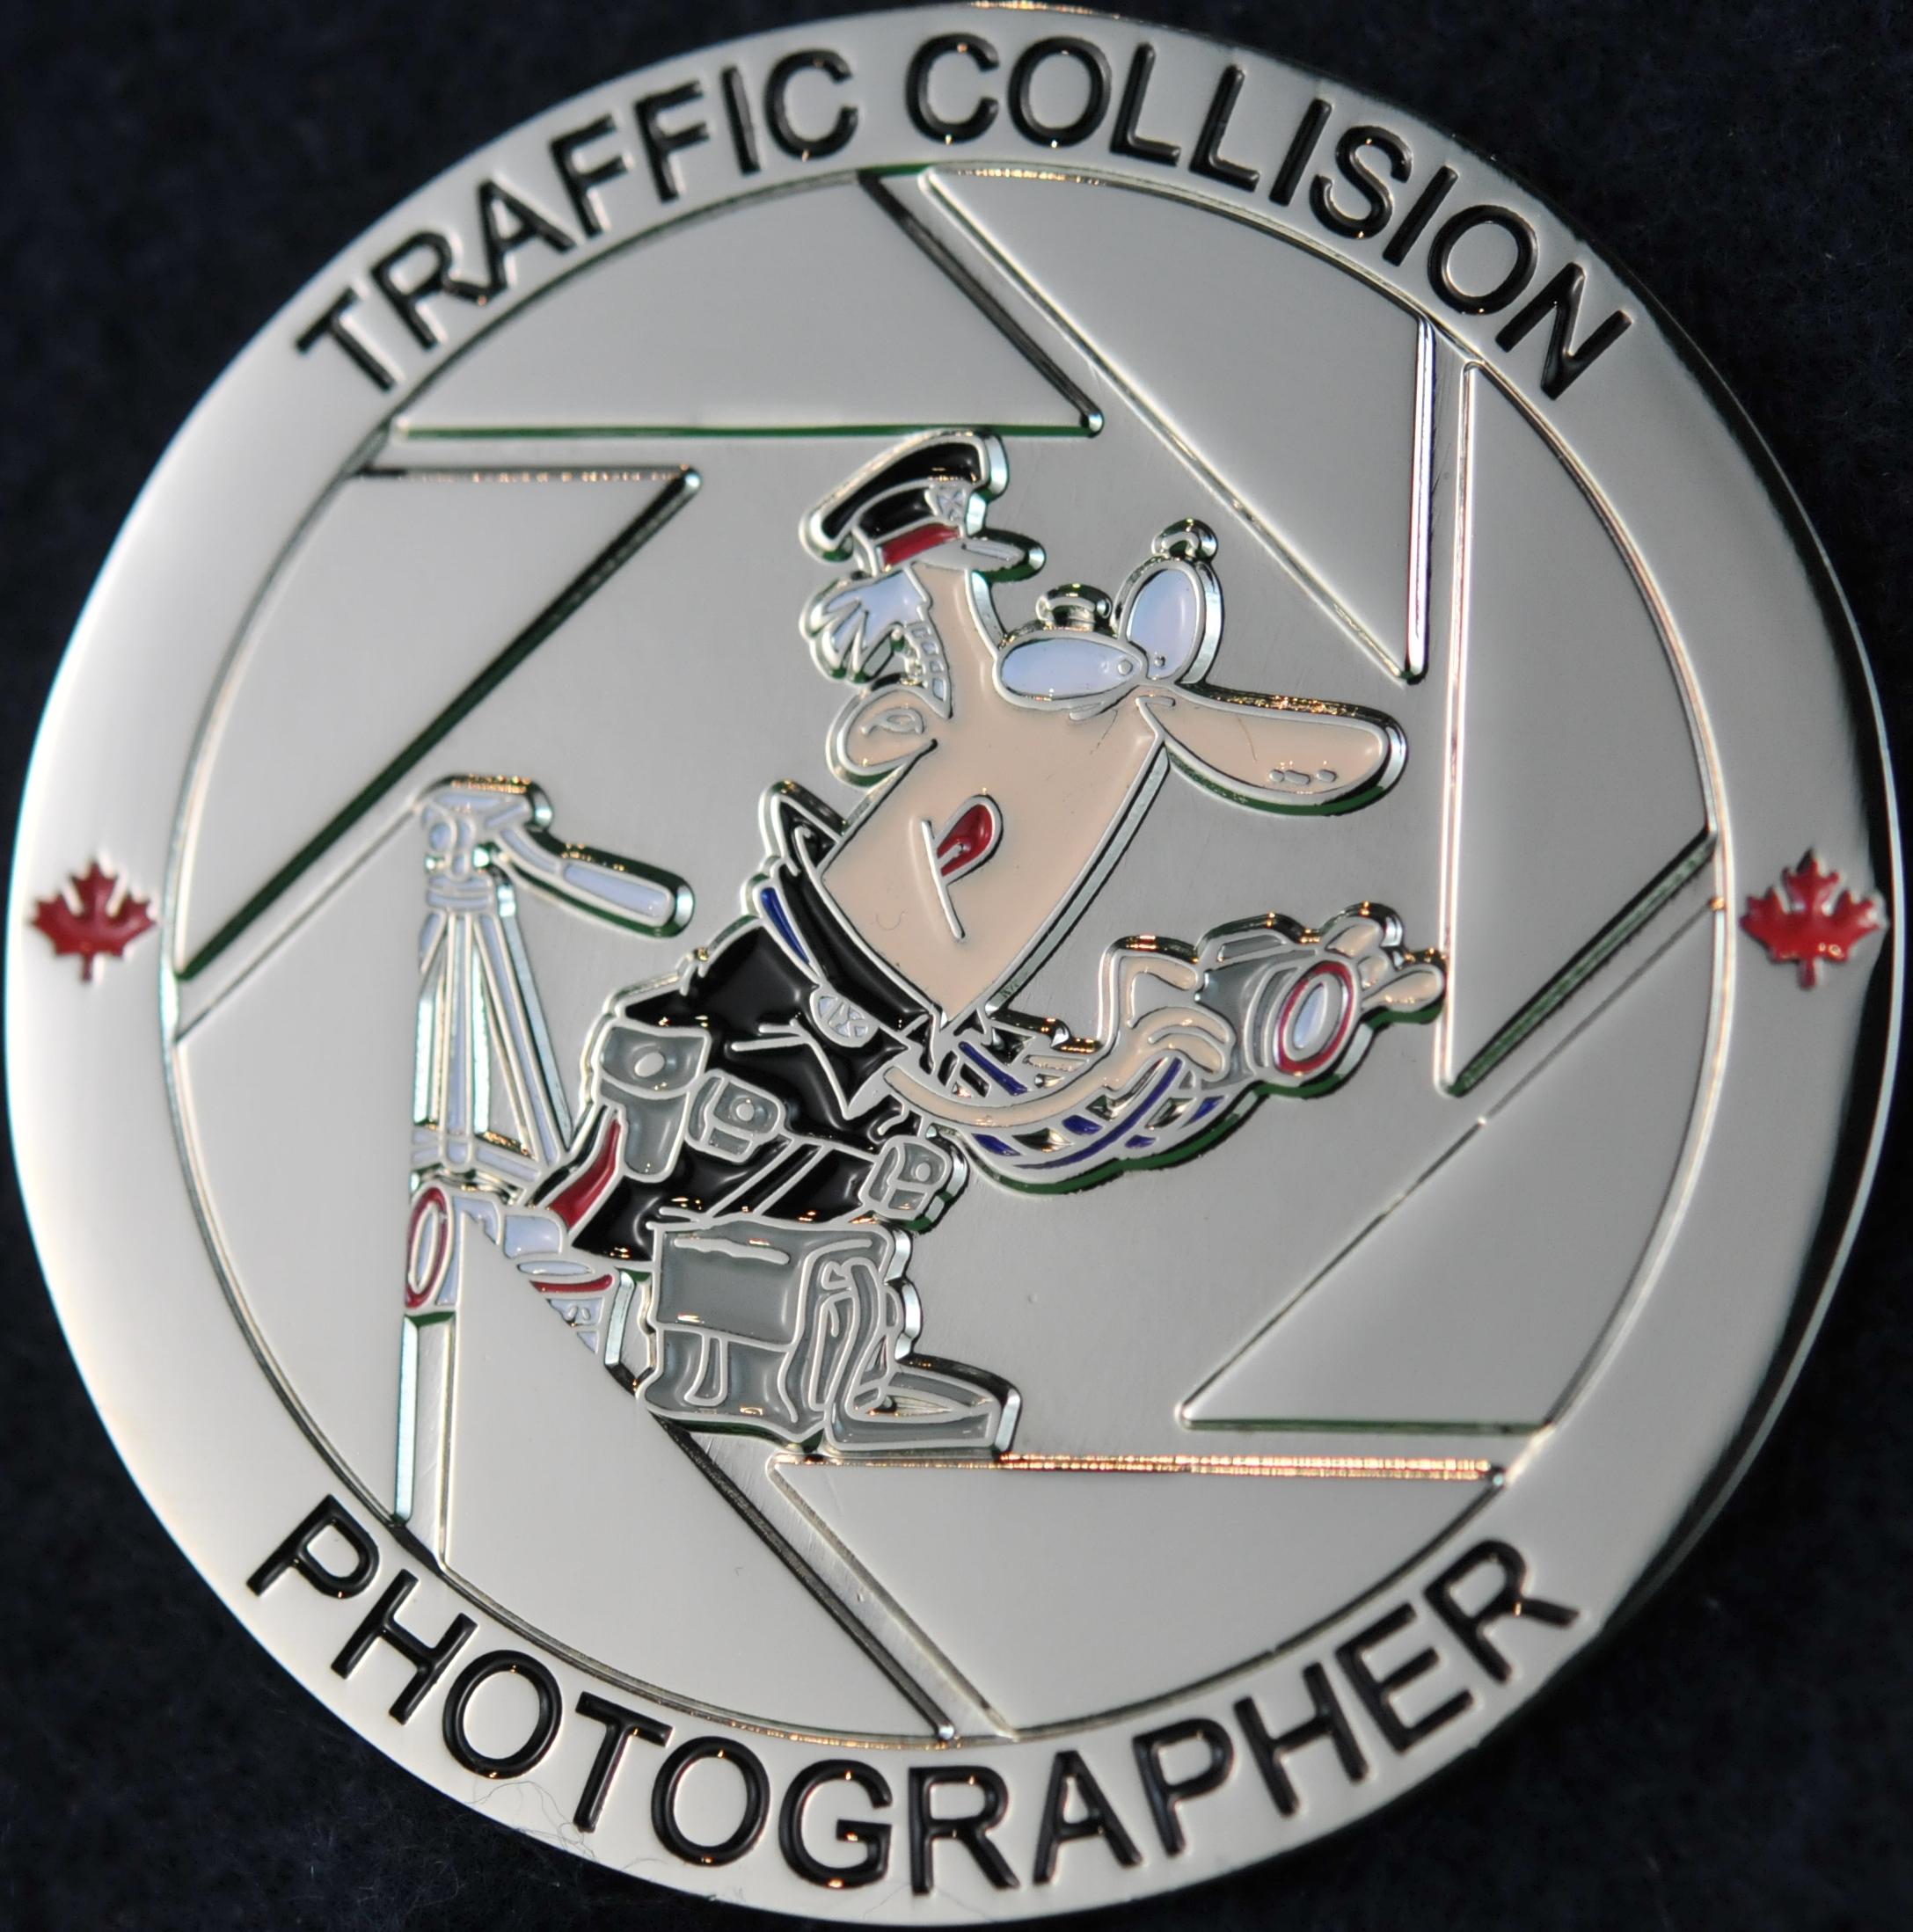 Toronto Police Service Traffic Collision Photographer